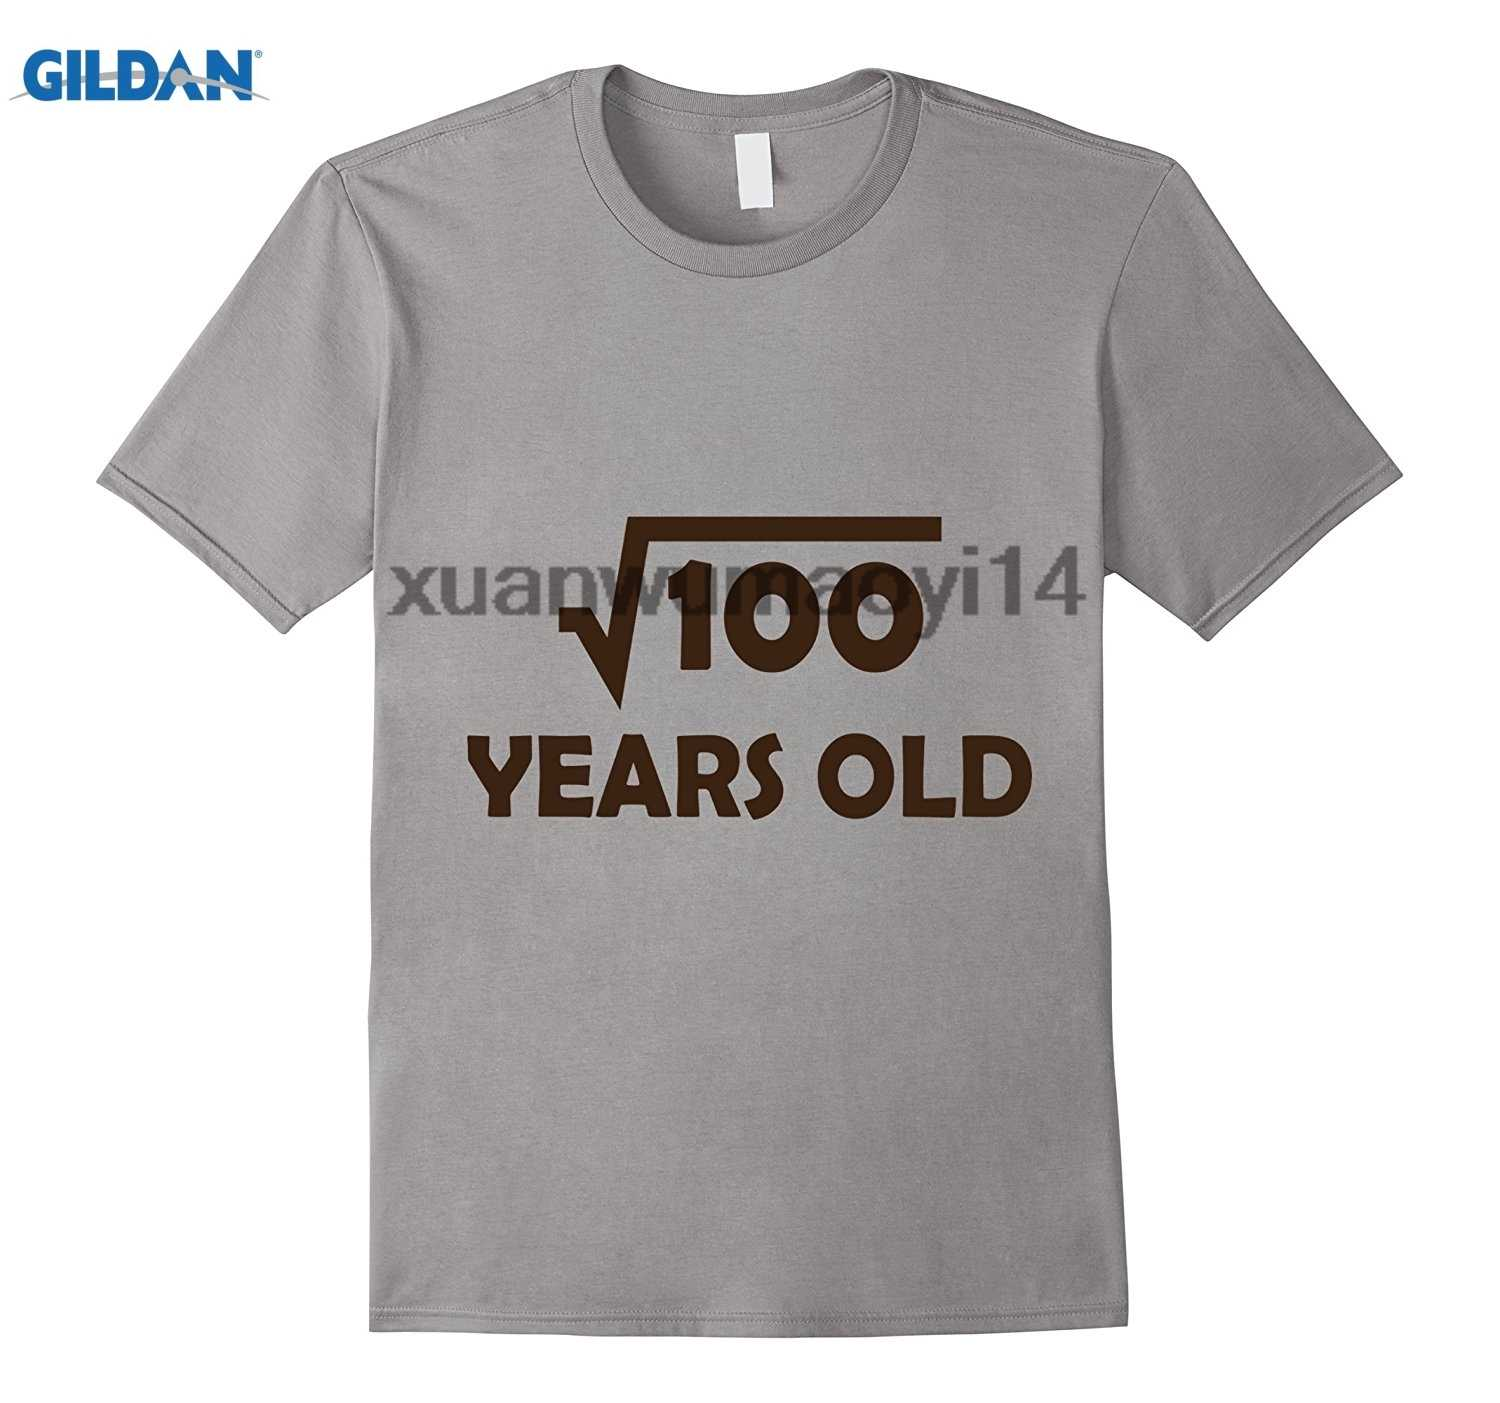 GILDAN Birthday Shirt For 10 Year Old Boy Or Girl 100 Square Root